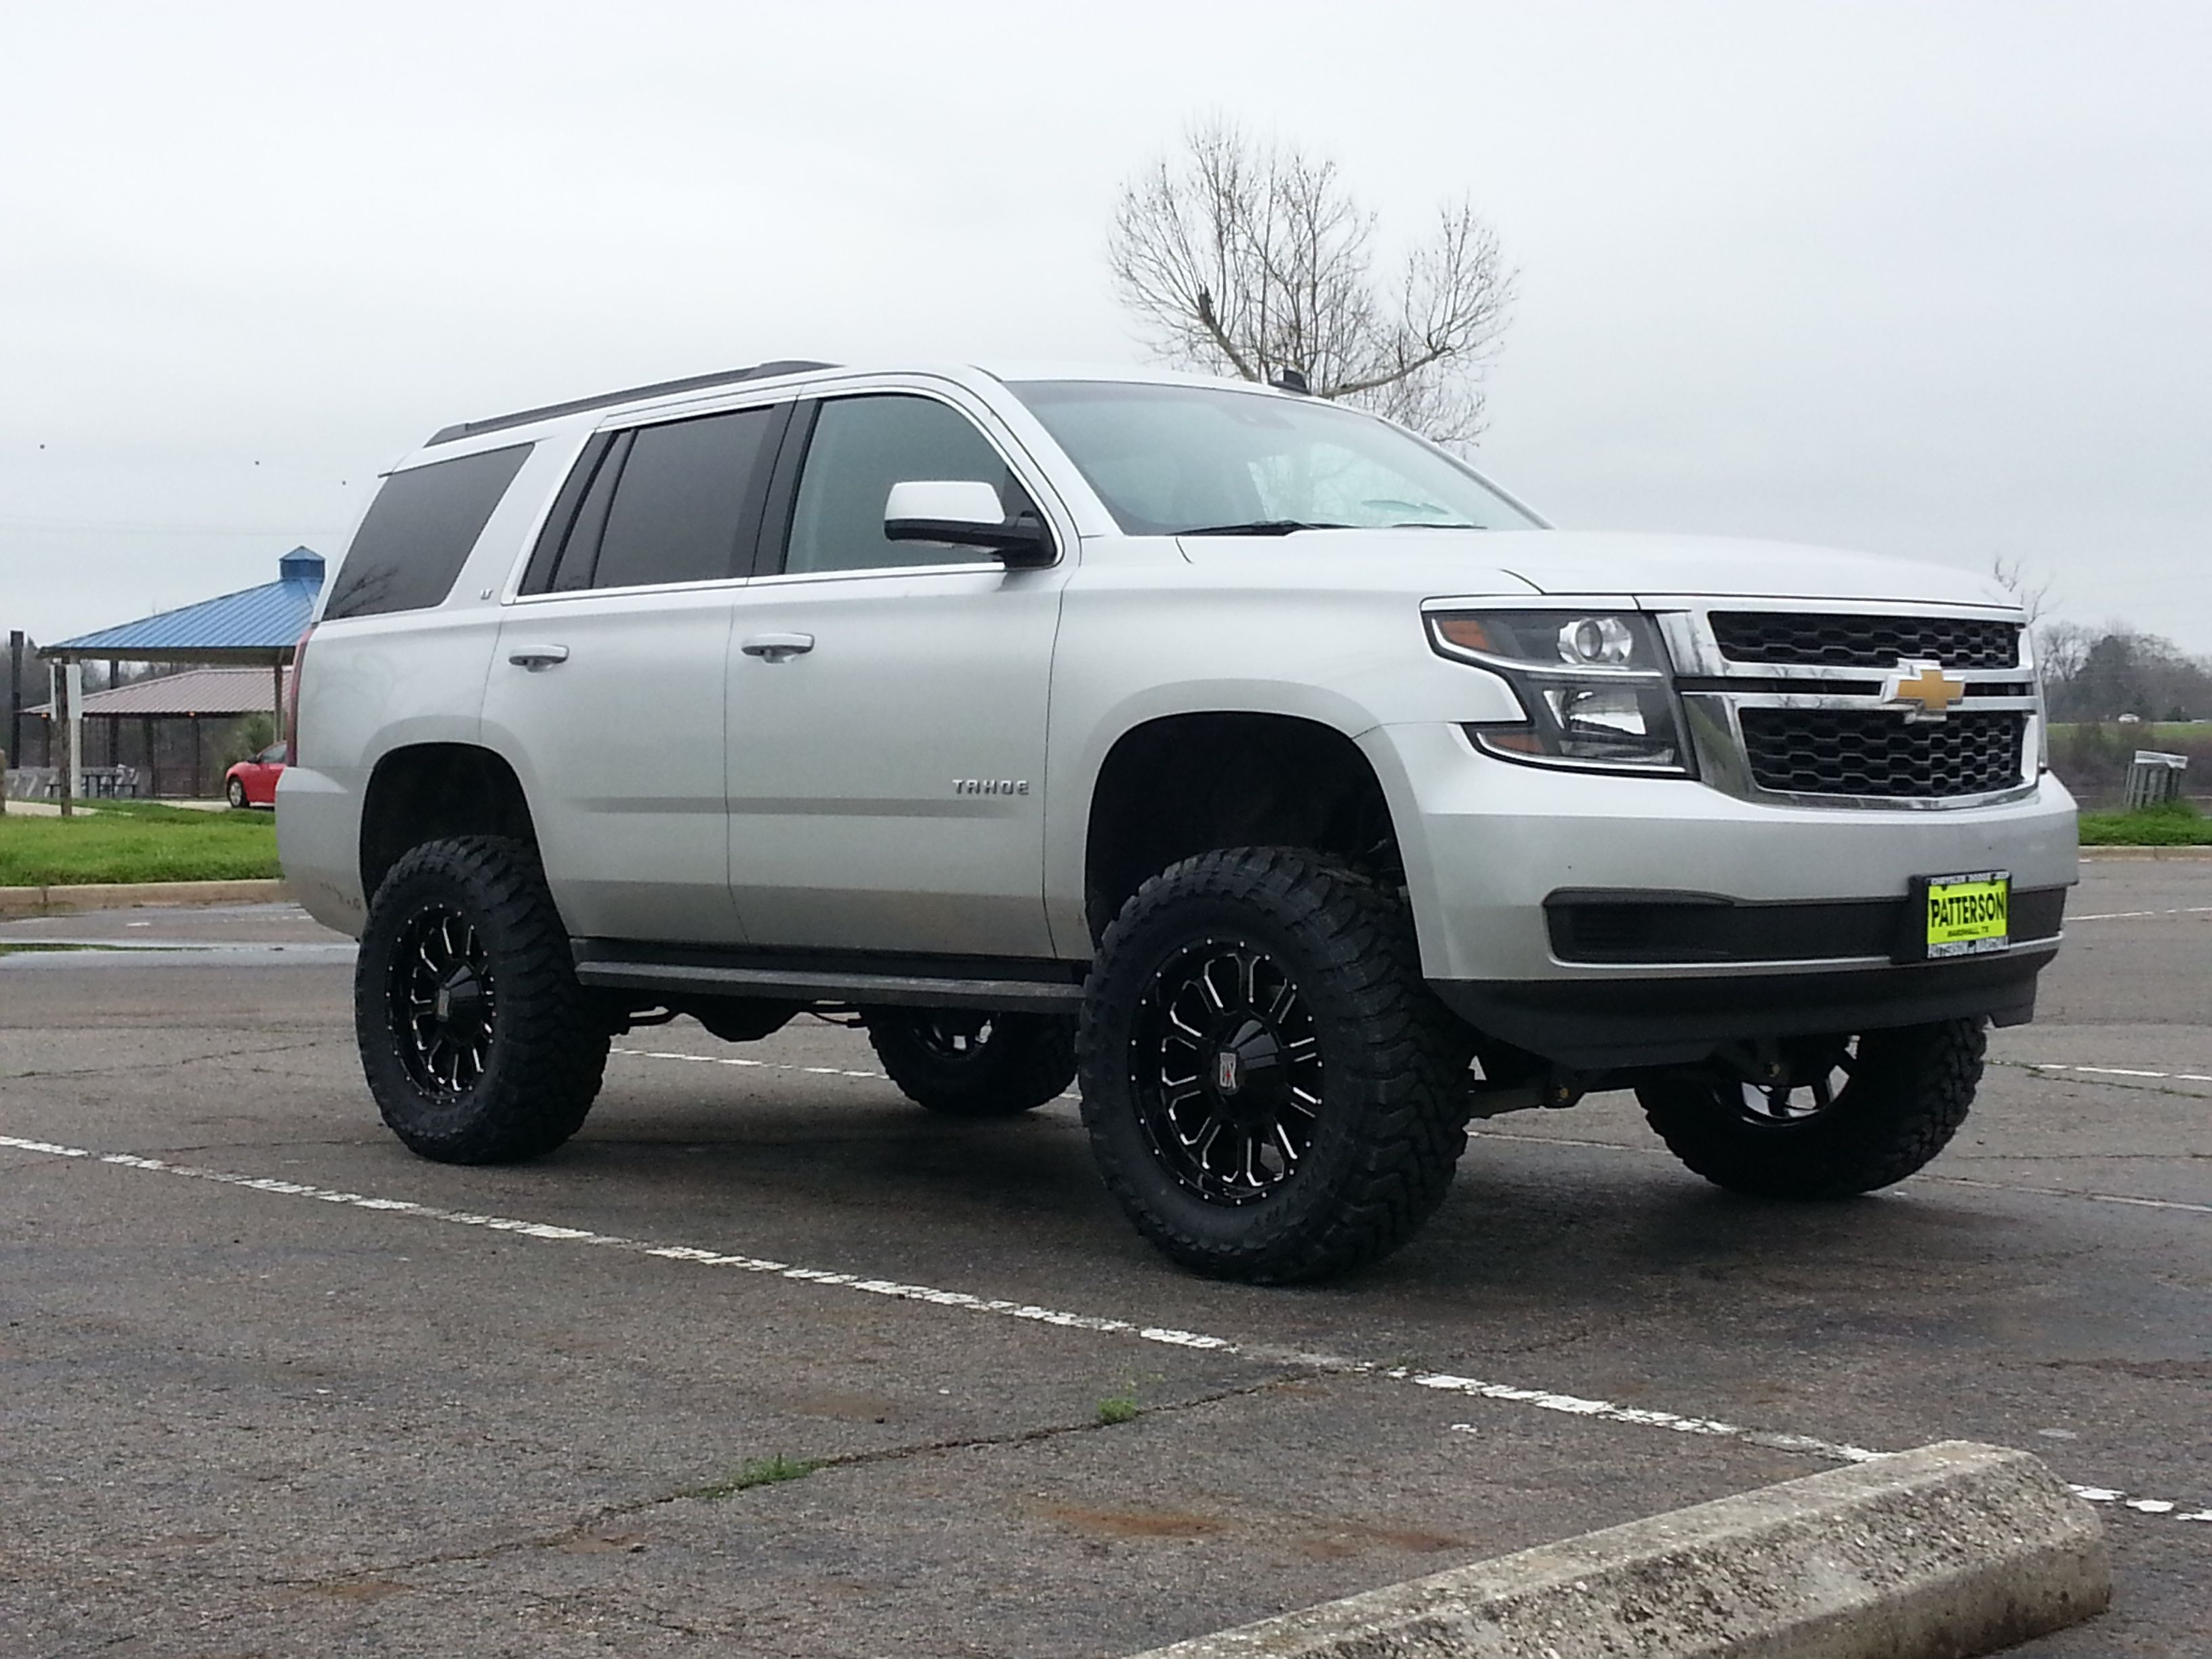 hight resolution of  6 inch fabtech suspension lift 35 inch toyo mt tires 20 inch xd bomb wheels